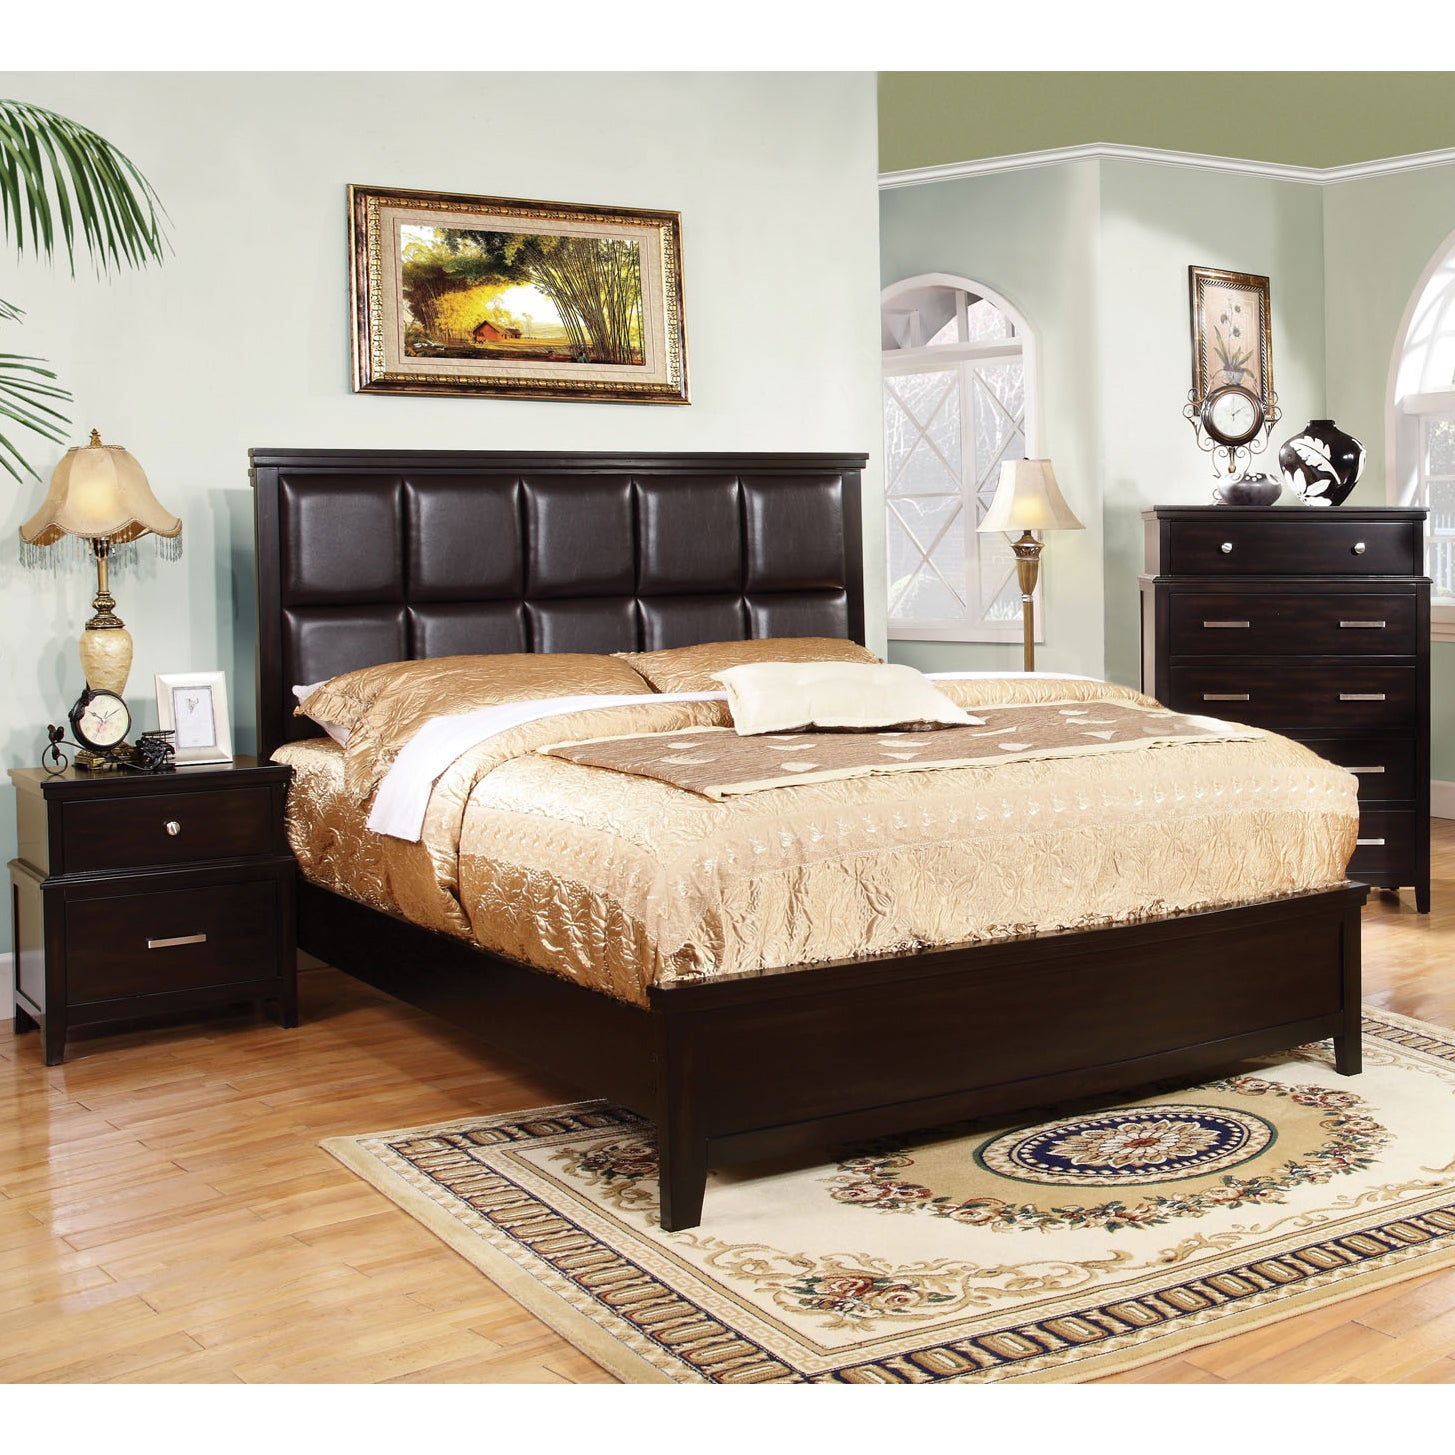 Shop furniture of america modern 3 piece espresso bedroom set free shipping today overstock com 9253422